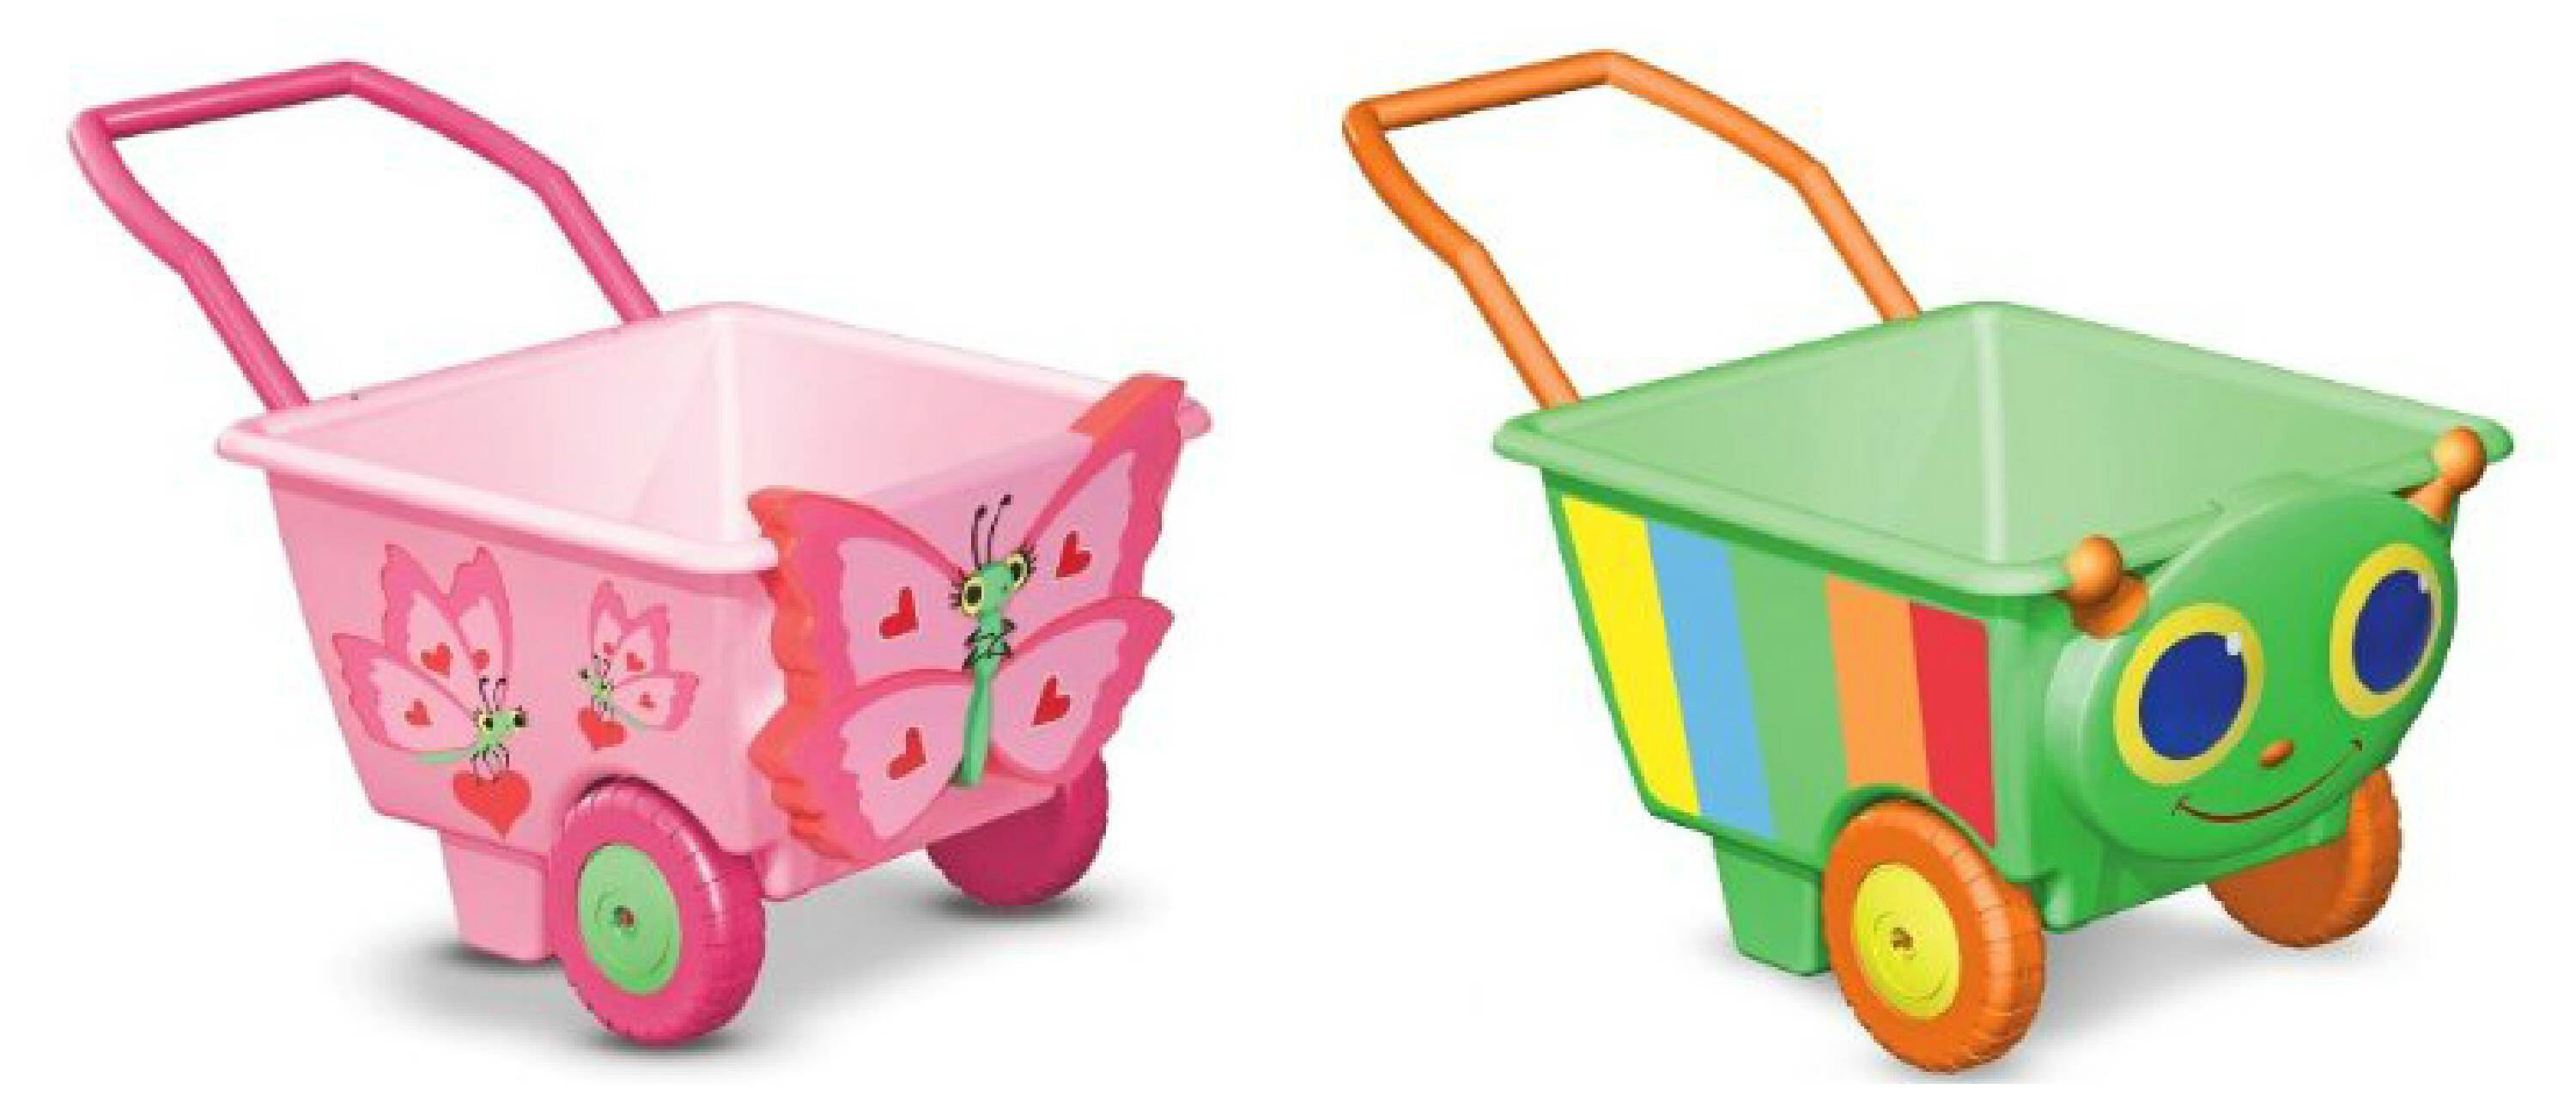 Garden Carts for Kids